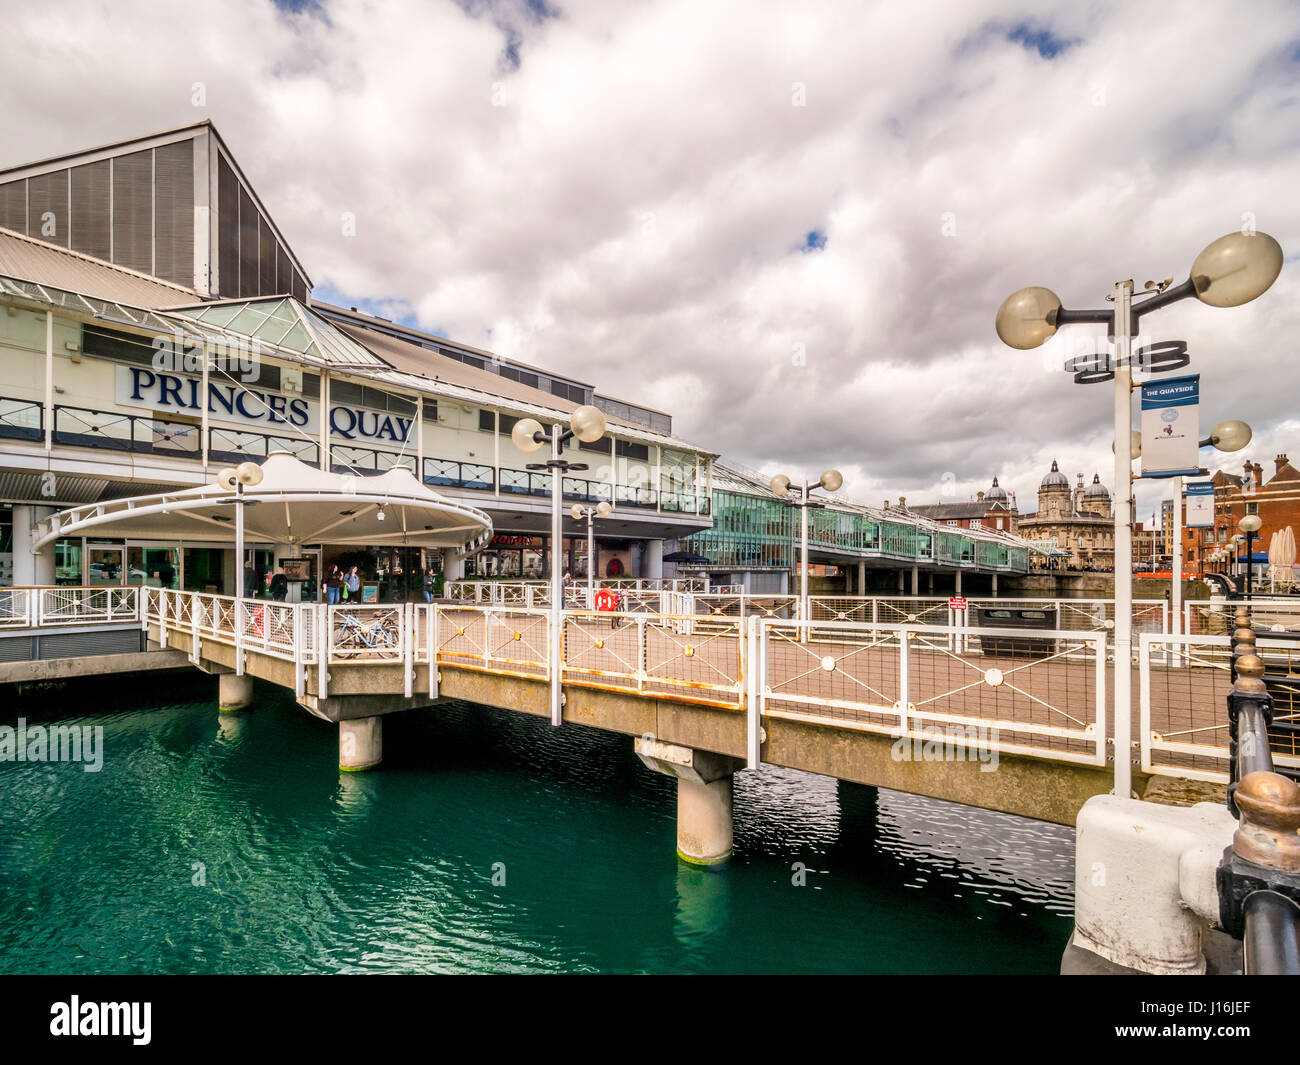 Prince's Quay shopping centre on stilts over the blue dyed water of Prince's dock, Hull, UK. - Stock Image